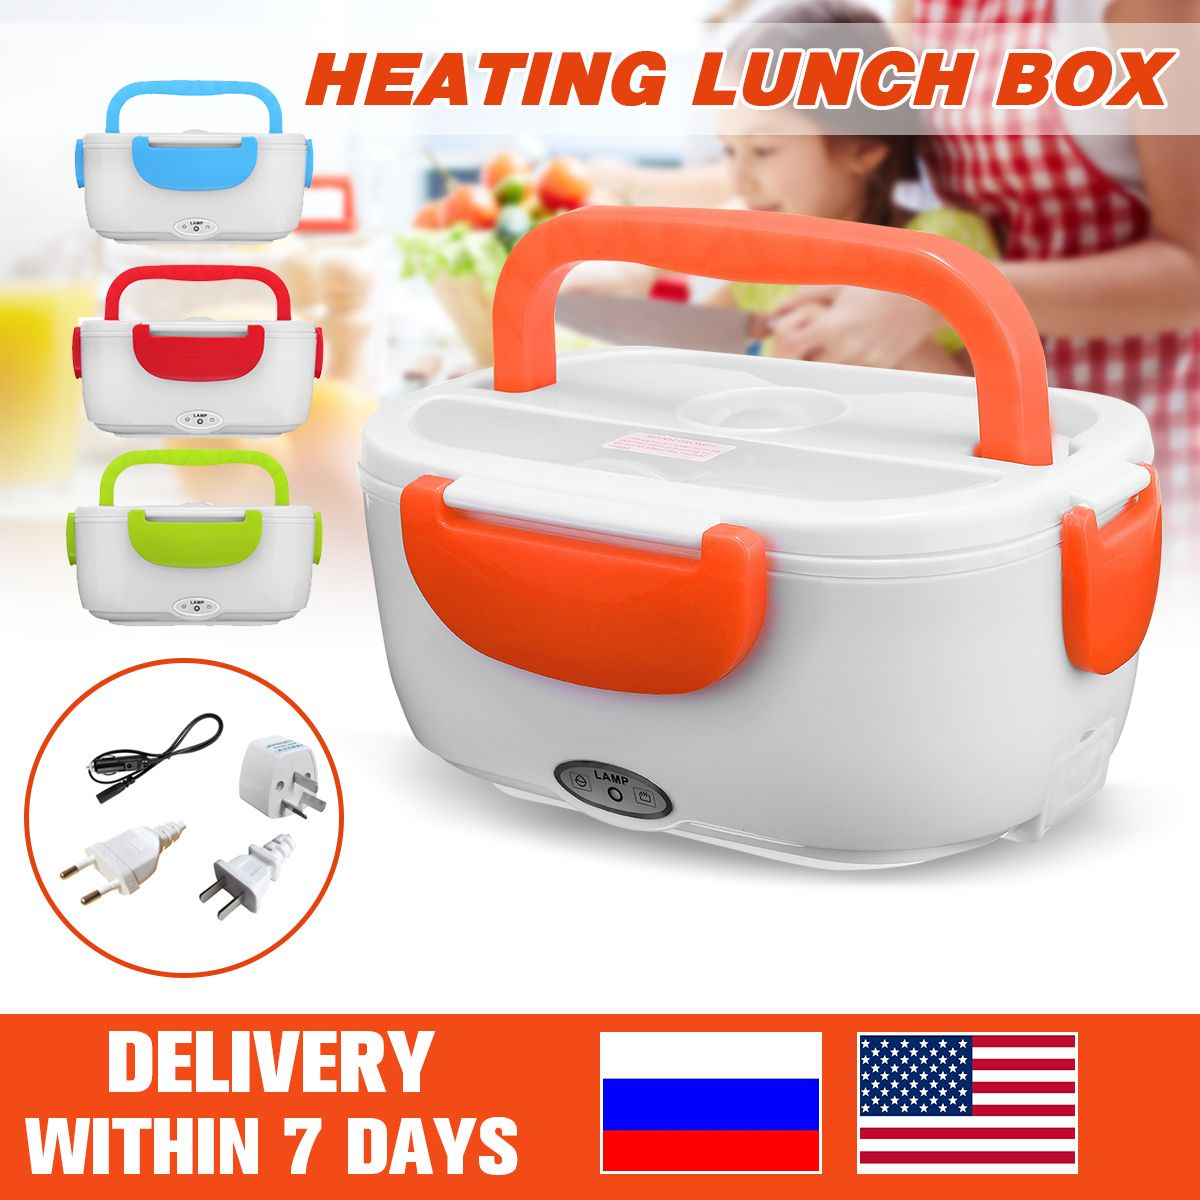 12110220v portable electric heating lunch box bento